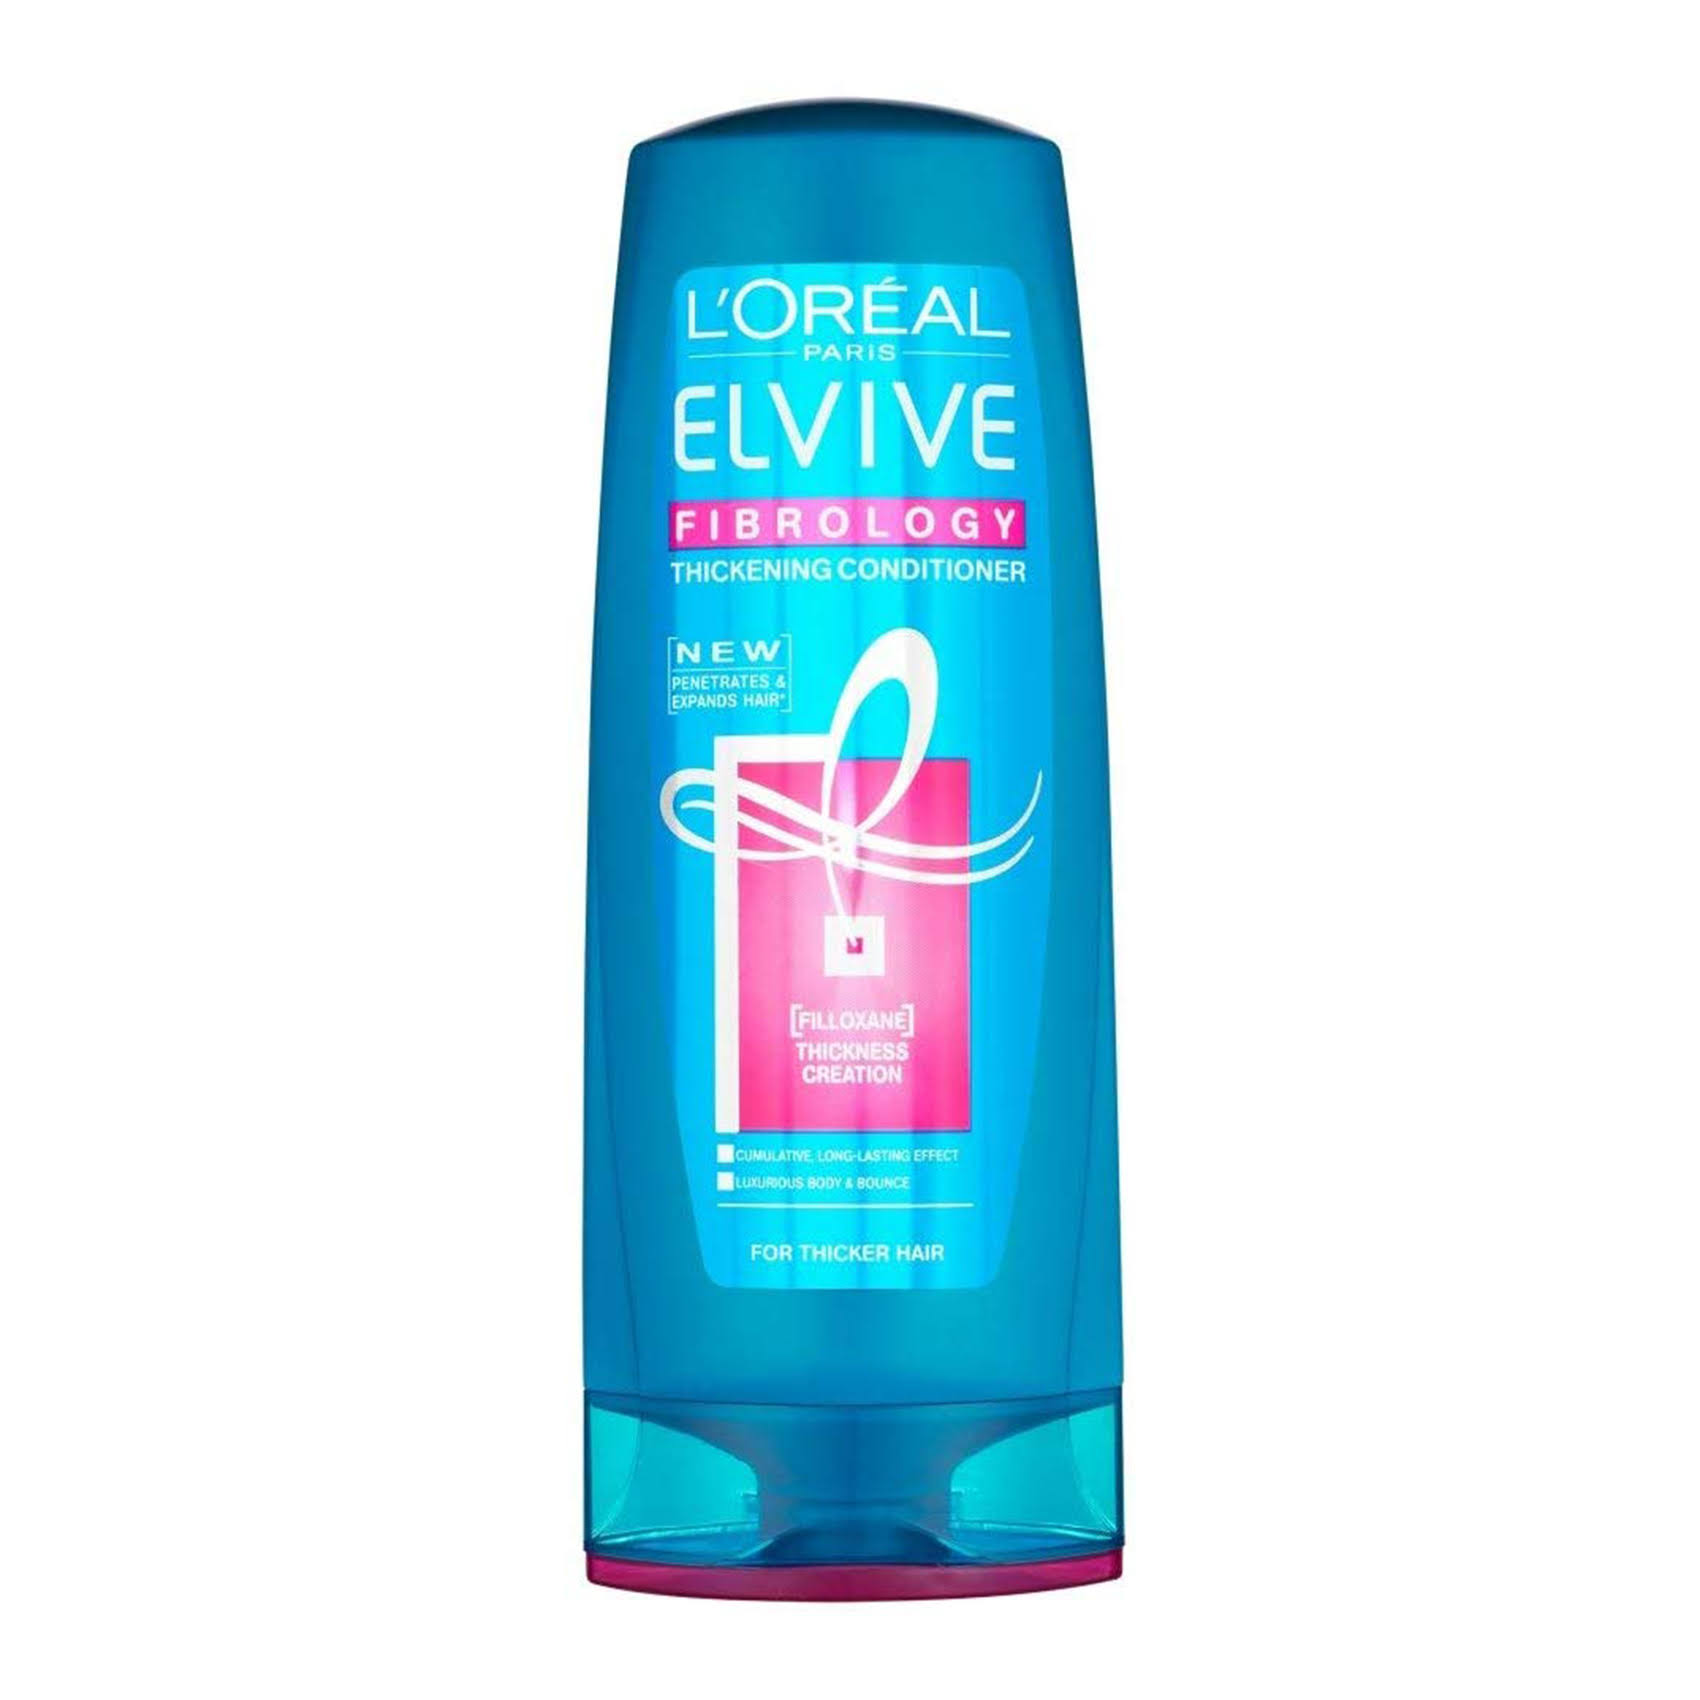 L'Oreal Paris Elvive Fibrology Thickening Conditioner 400ml